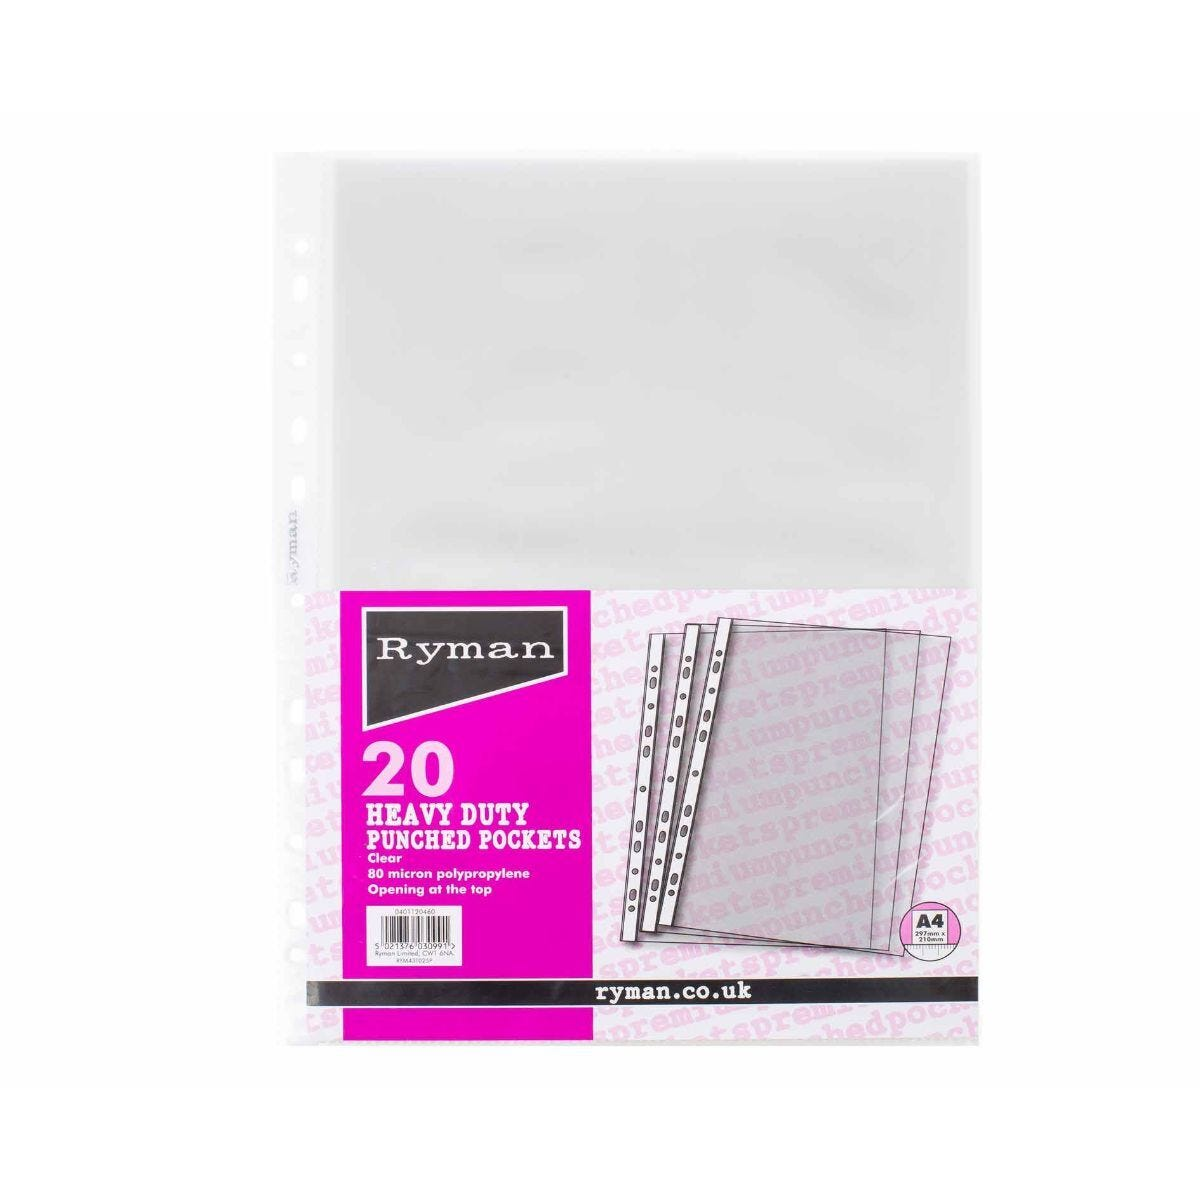 Ryman Premium Punched Pockets A4 80 Micron Pack of 20